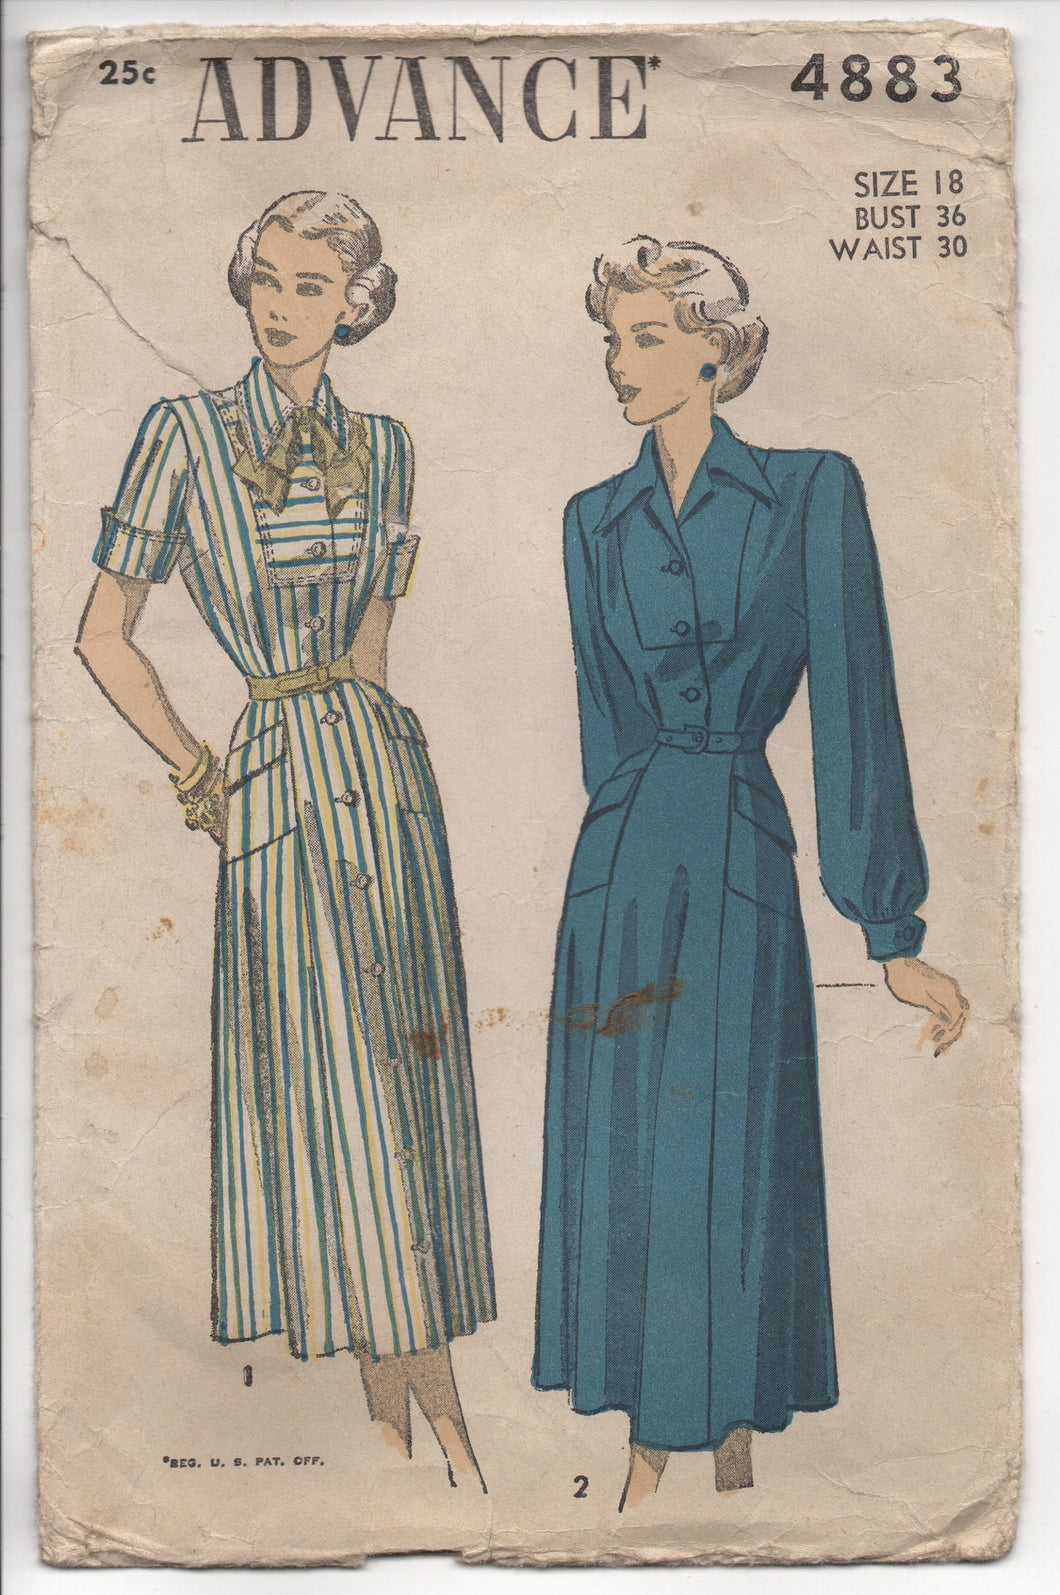 1940's Advance One-Piece Dress Long Yoke, Bow and Angular Pockets Pattern- Bust 36